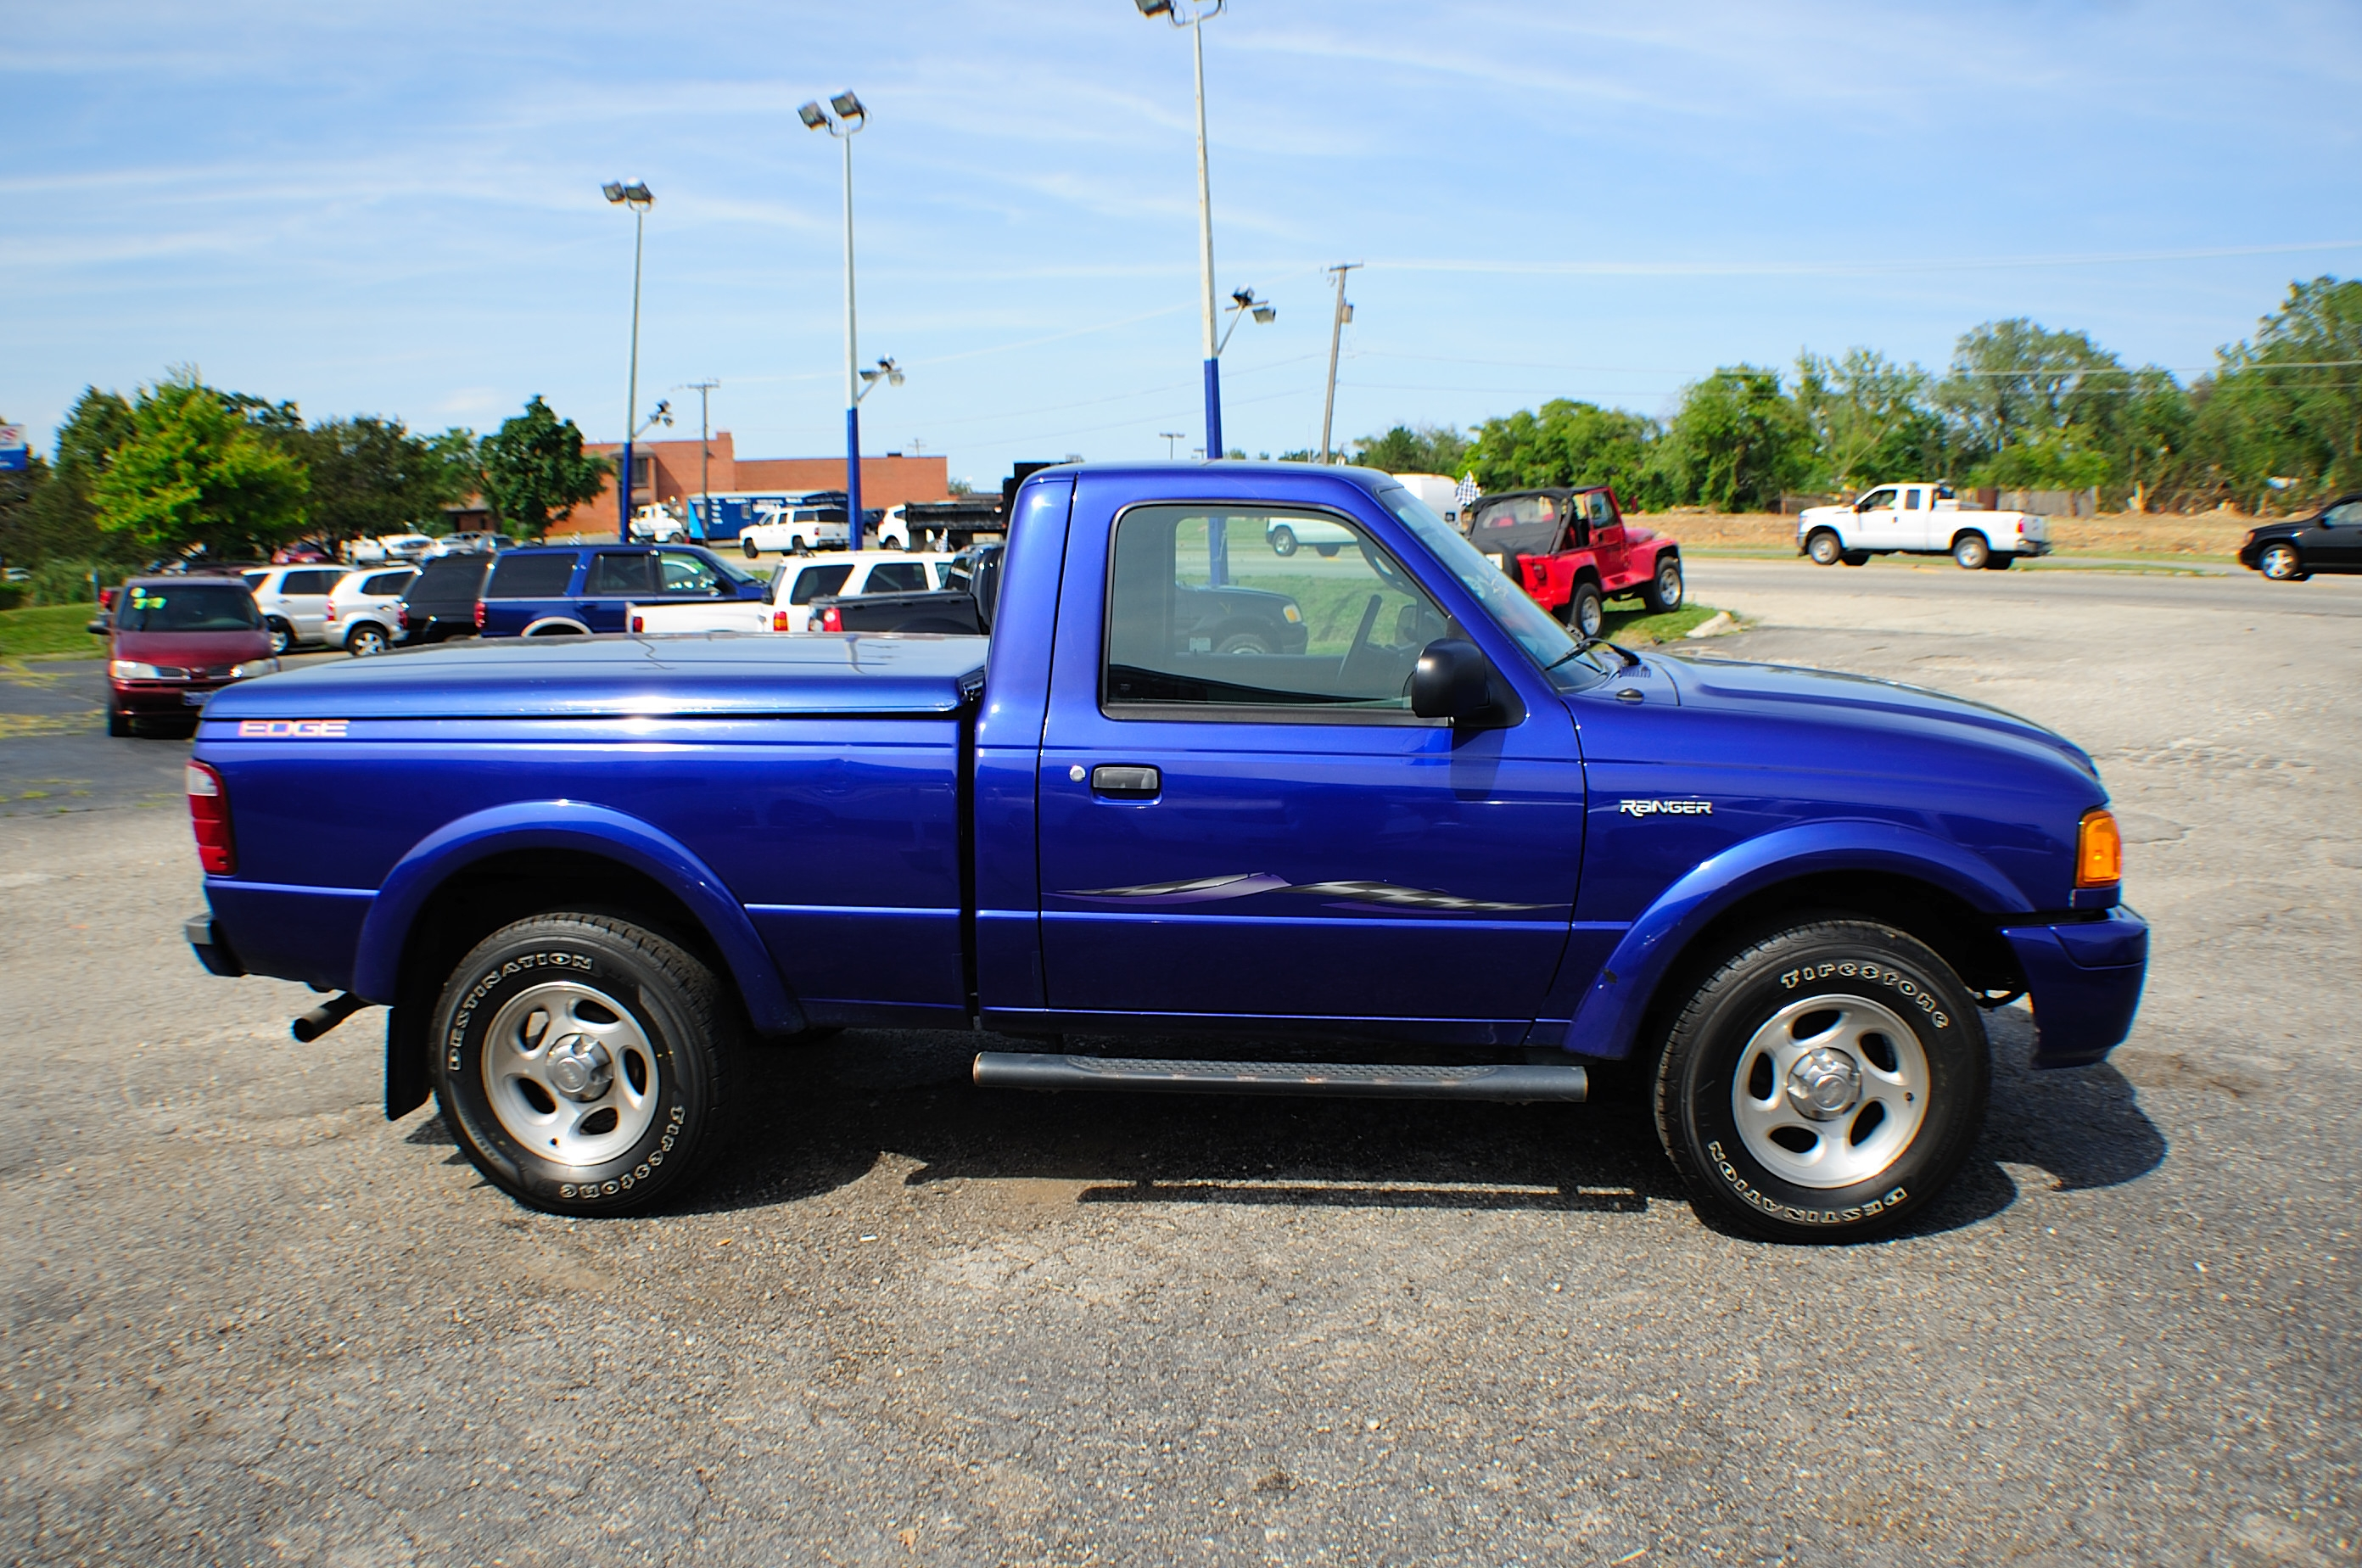 2004 ford ranger edge blue 4x2 sport used truck sale